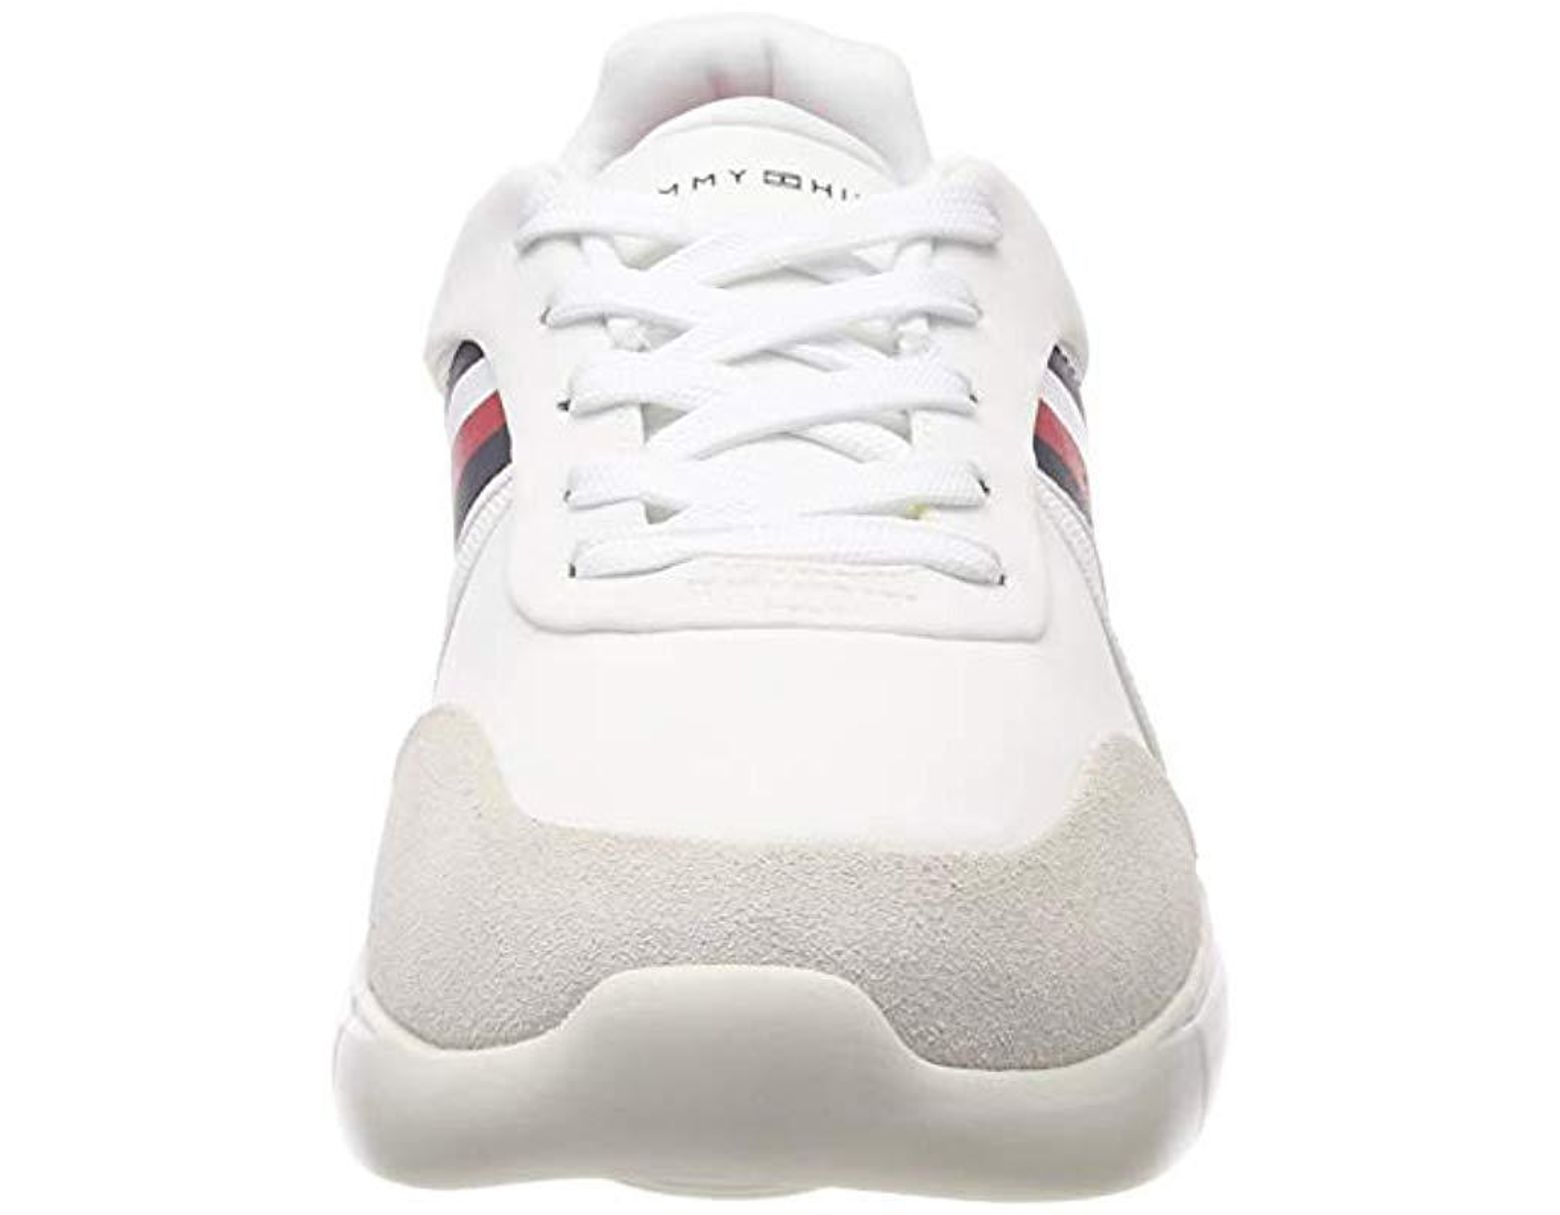 Runner Tommy Top In Hilfiger White Lighweight Corporate Low Sneakers CxshQBrdot